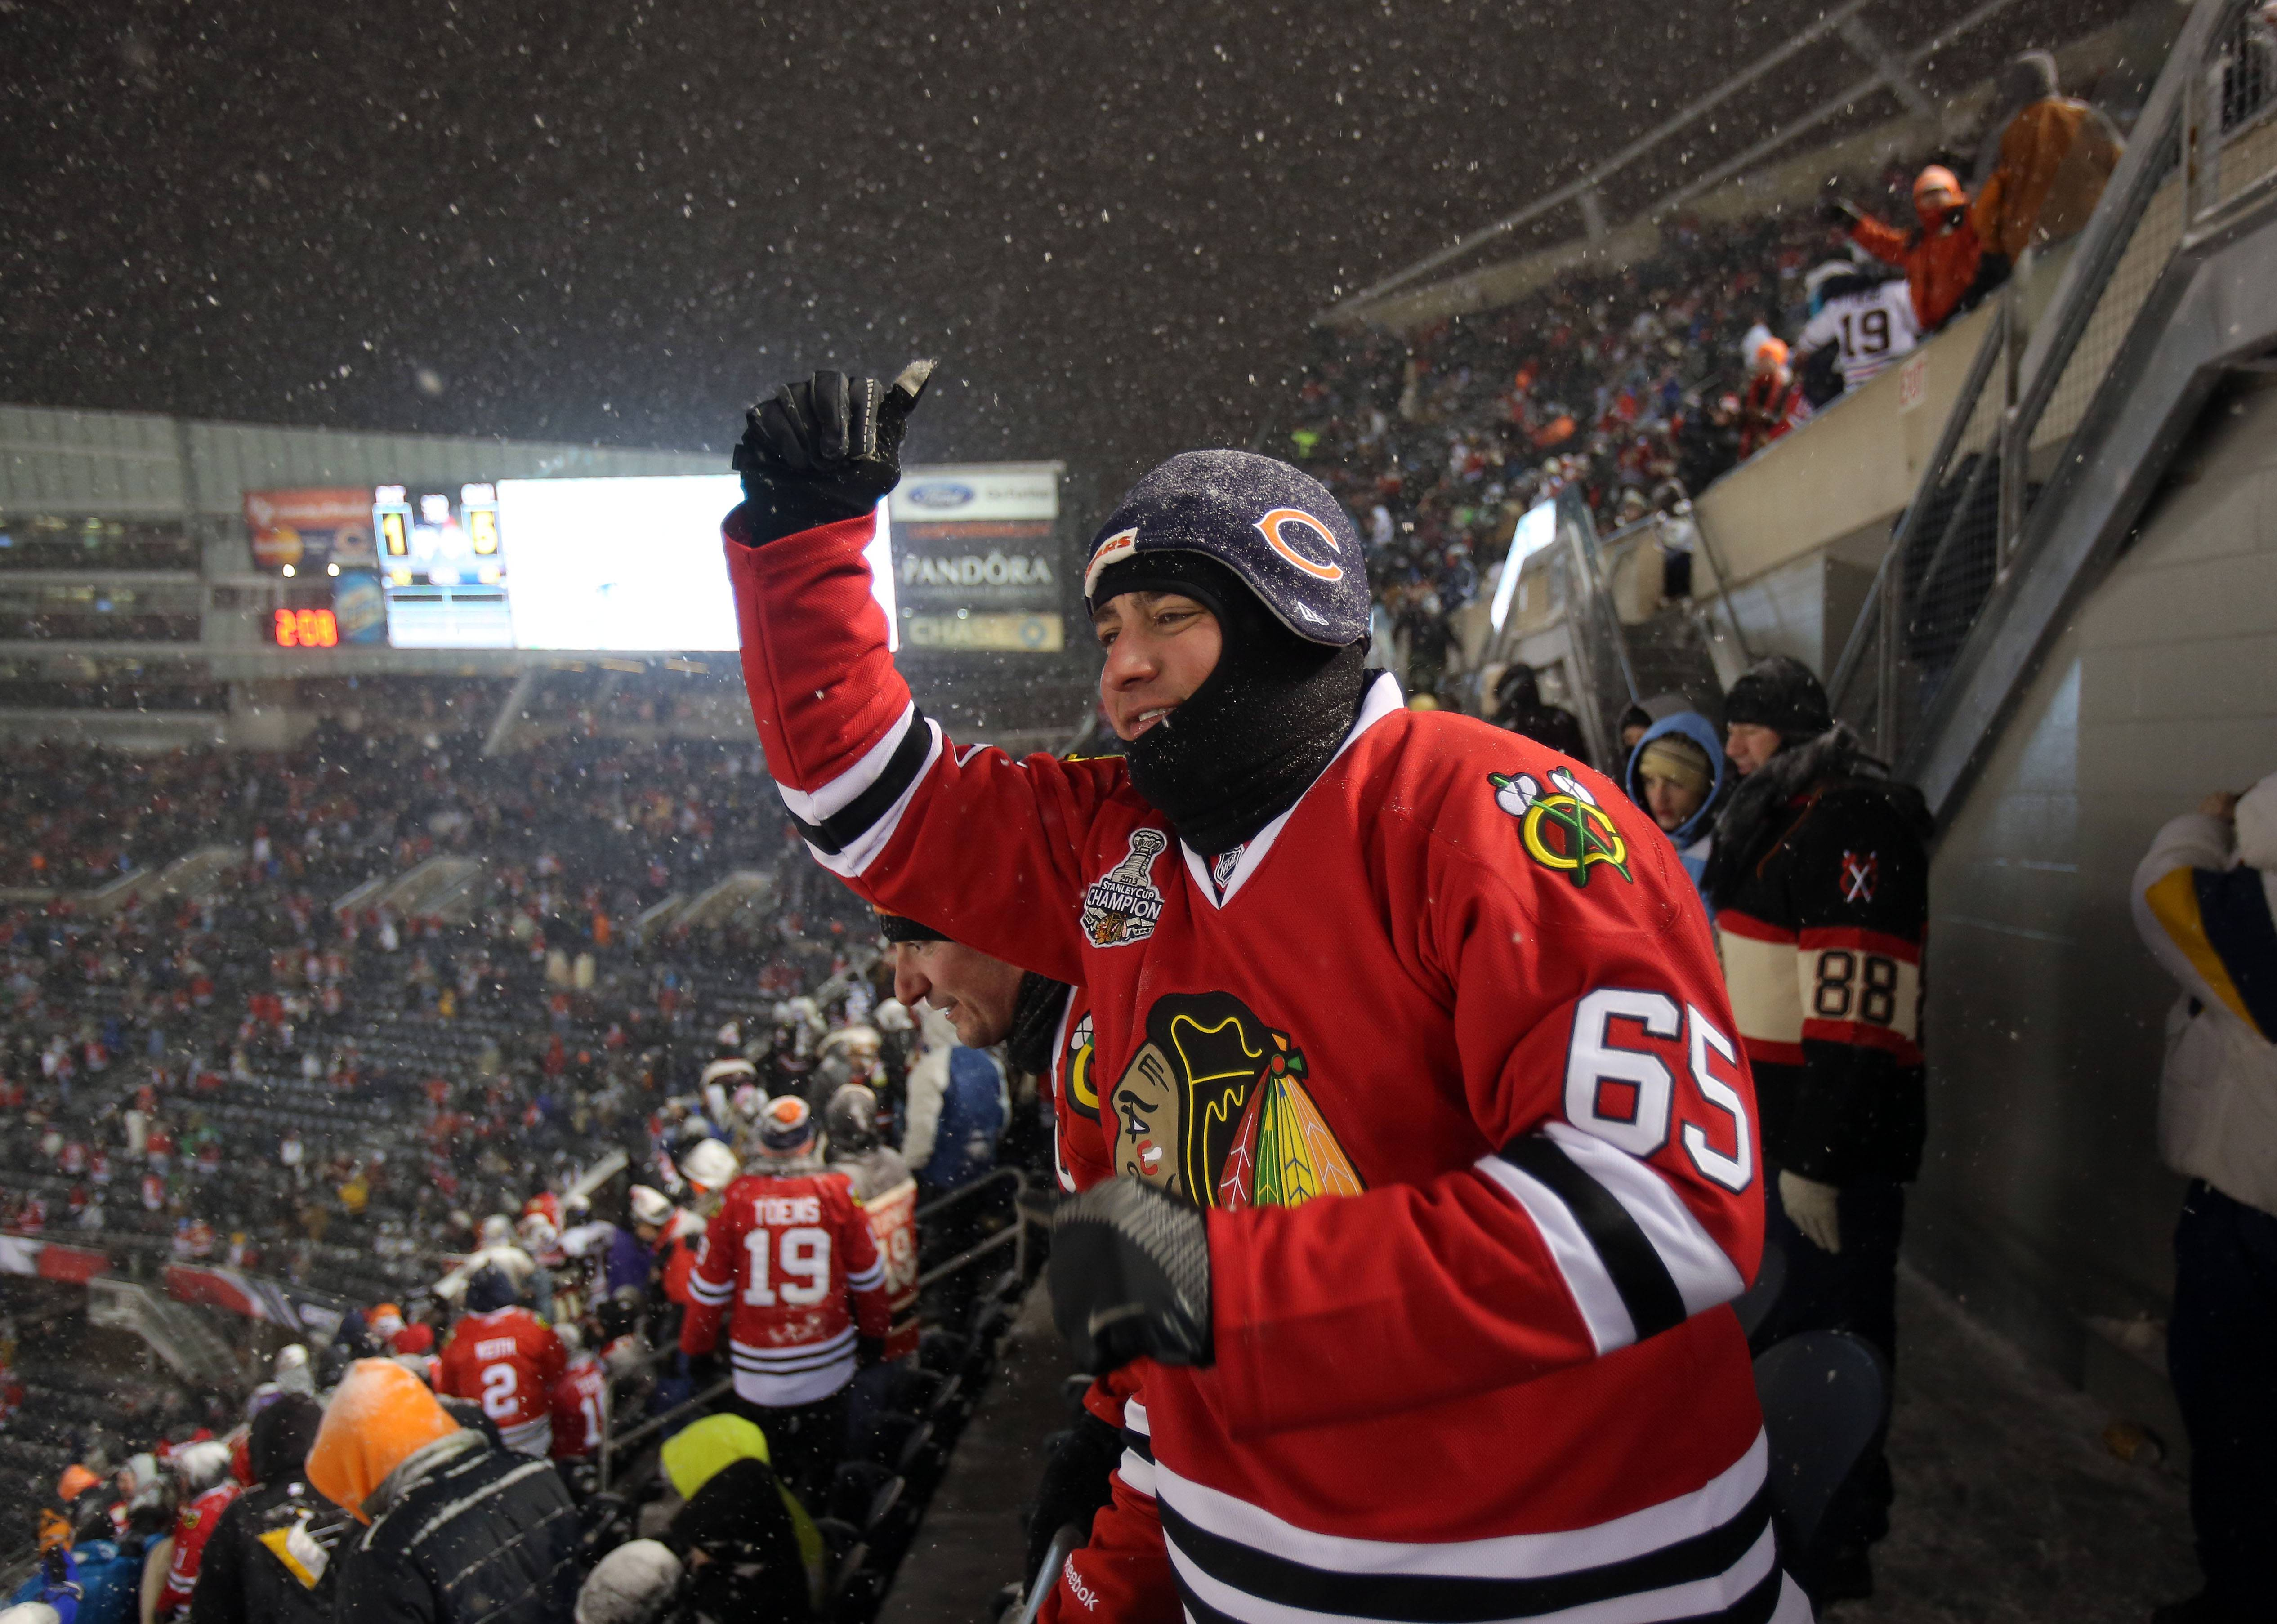 Gregg Braun of Glendale Heights dances after the Blackhawks beat the Penguins 5-1 in the NHL Stadium Series Saturday at Soldier Field.